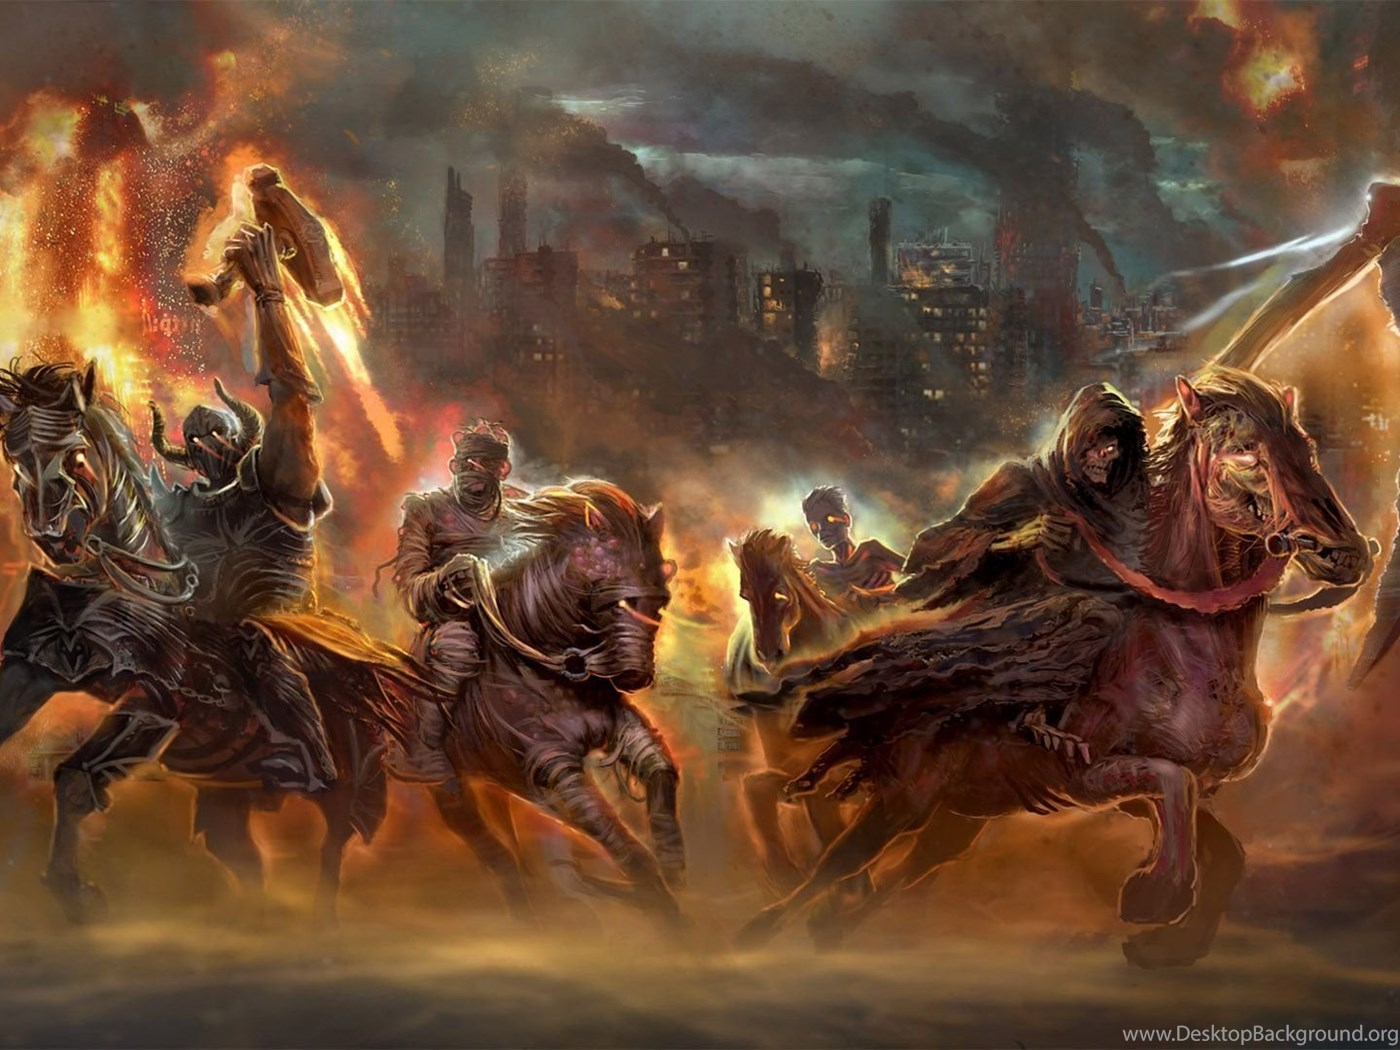 Four Horsemen Of The Apocalypse Wallpapers Walldevil Best Free